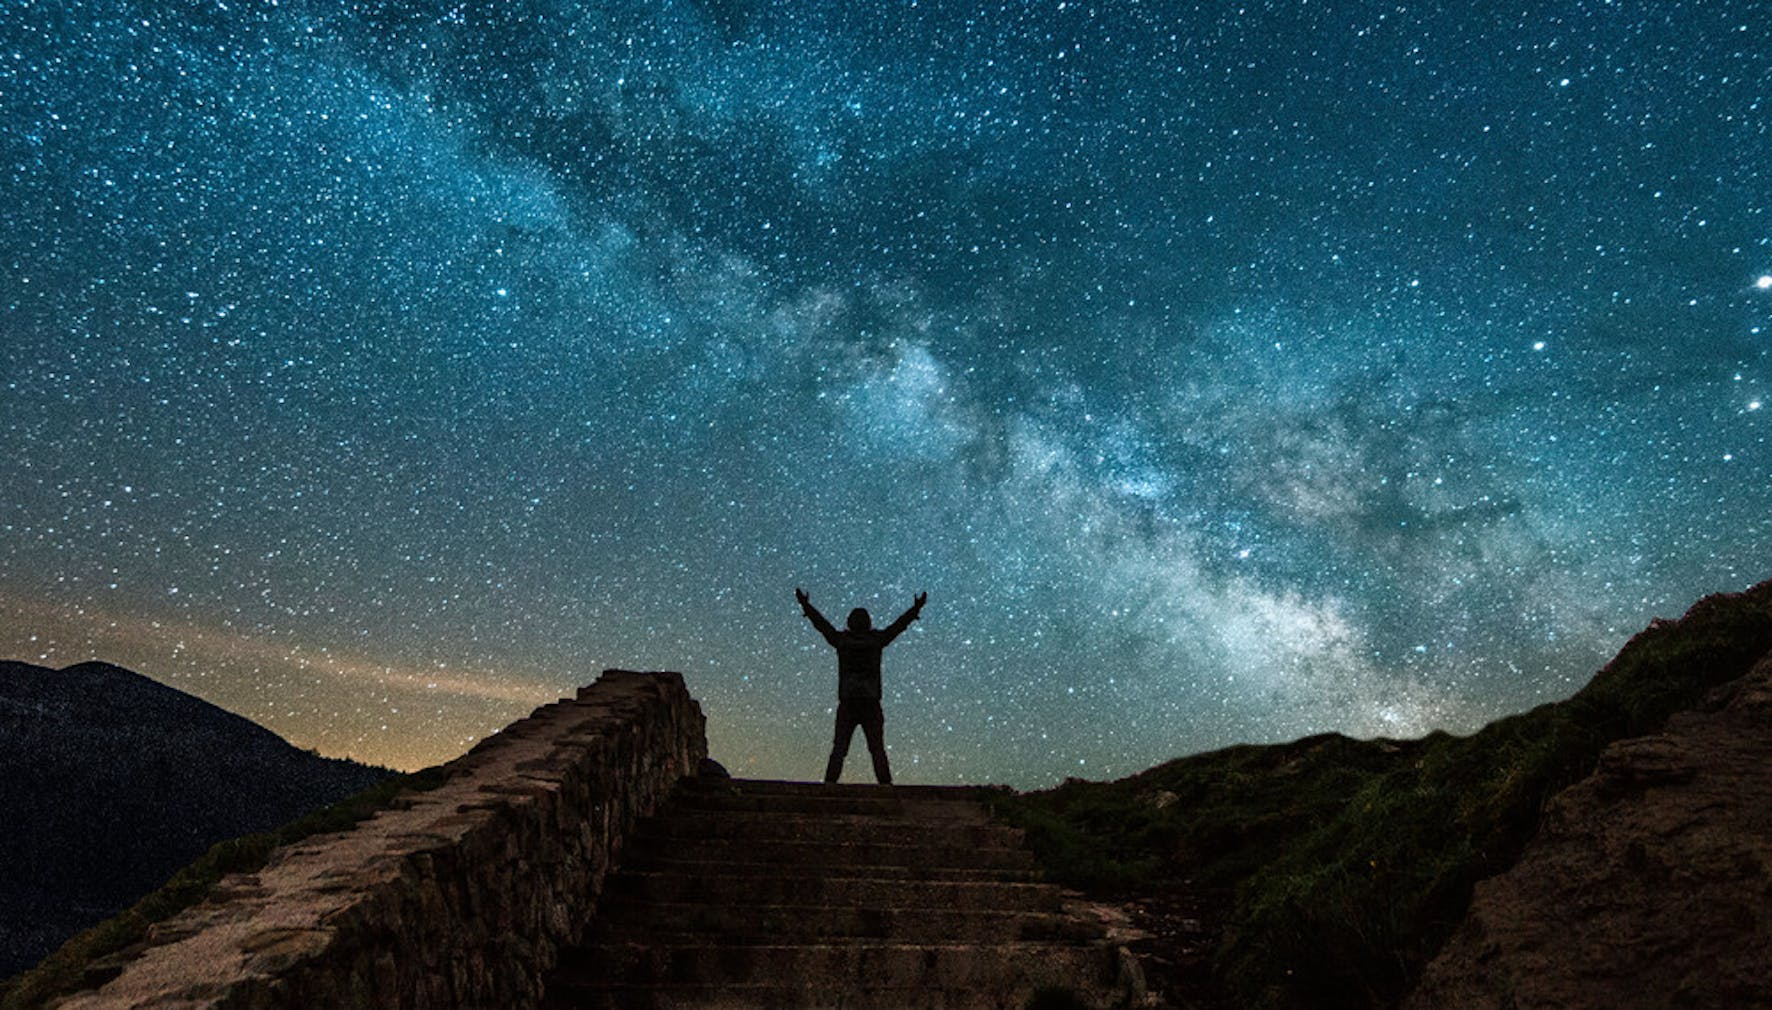 Man standing in the desert raising his hands towards the Milky Way galaxy